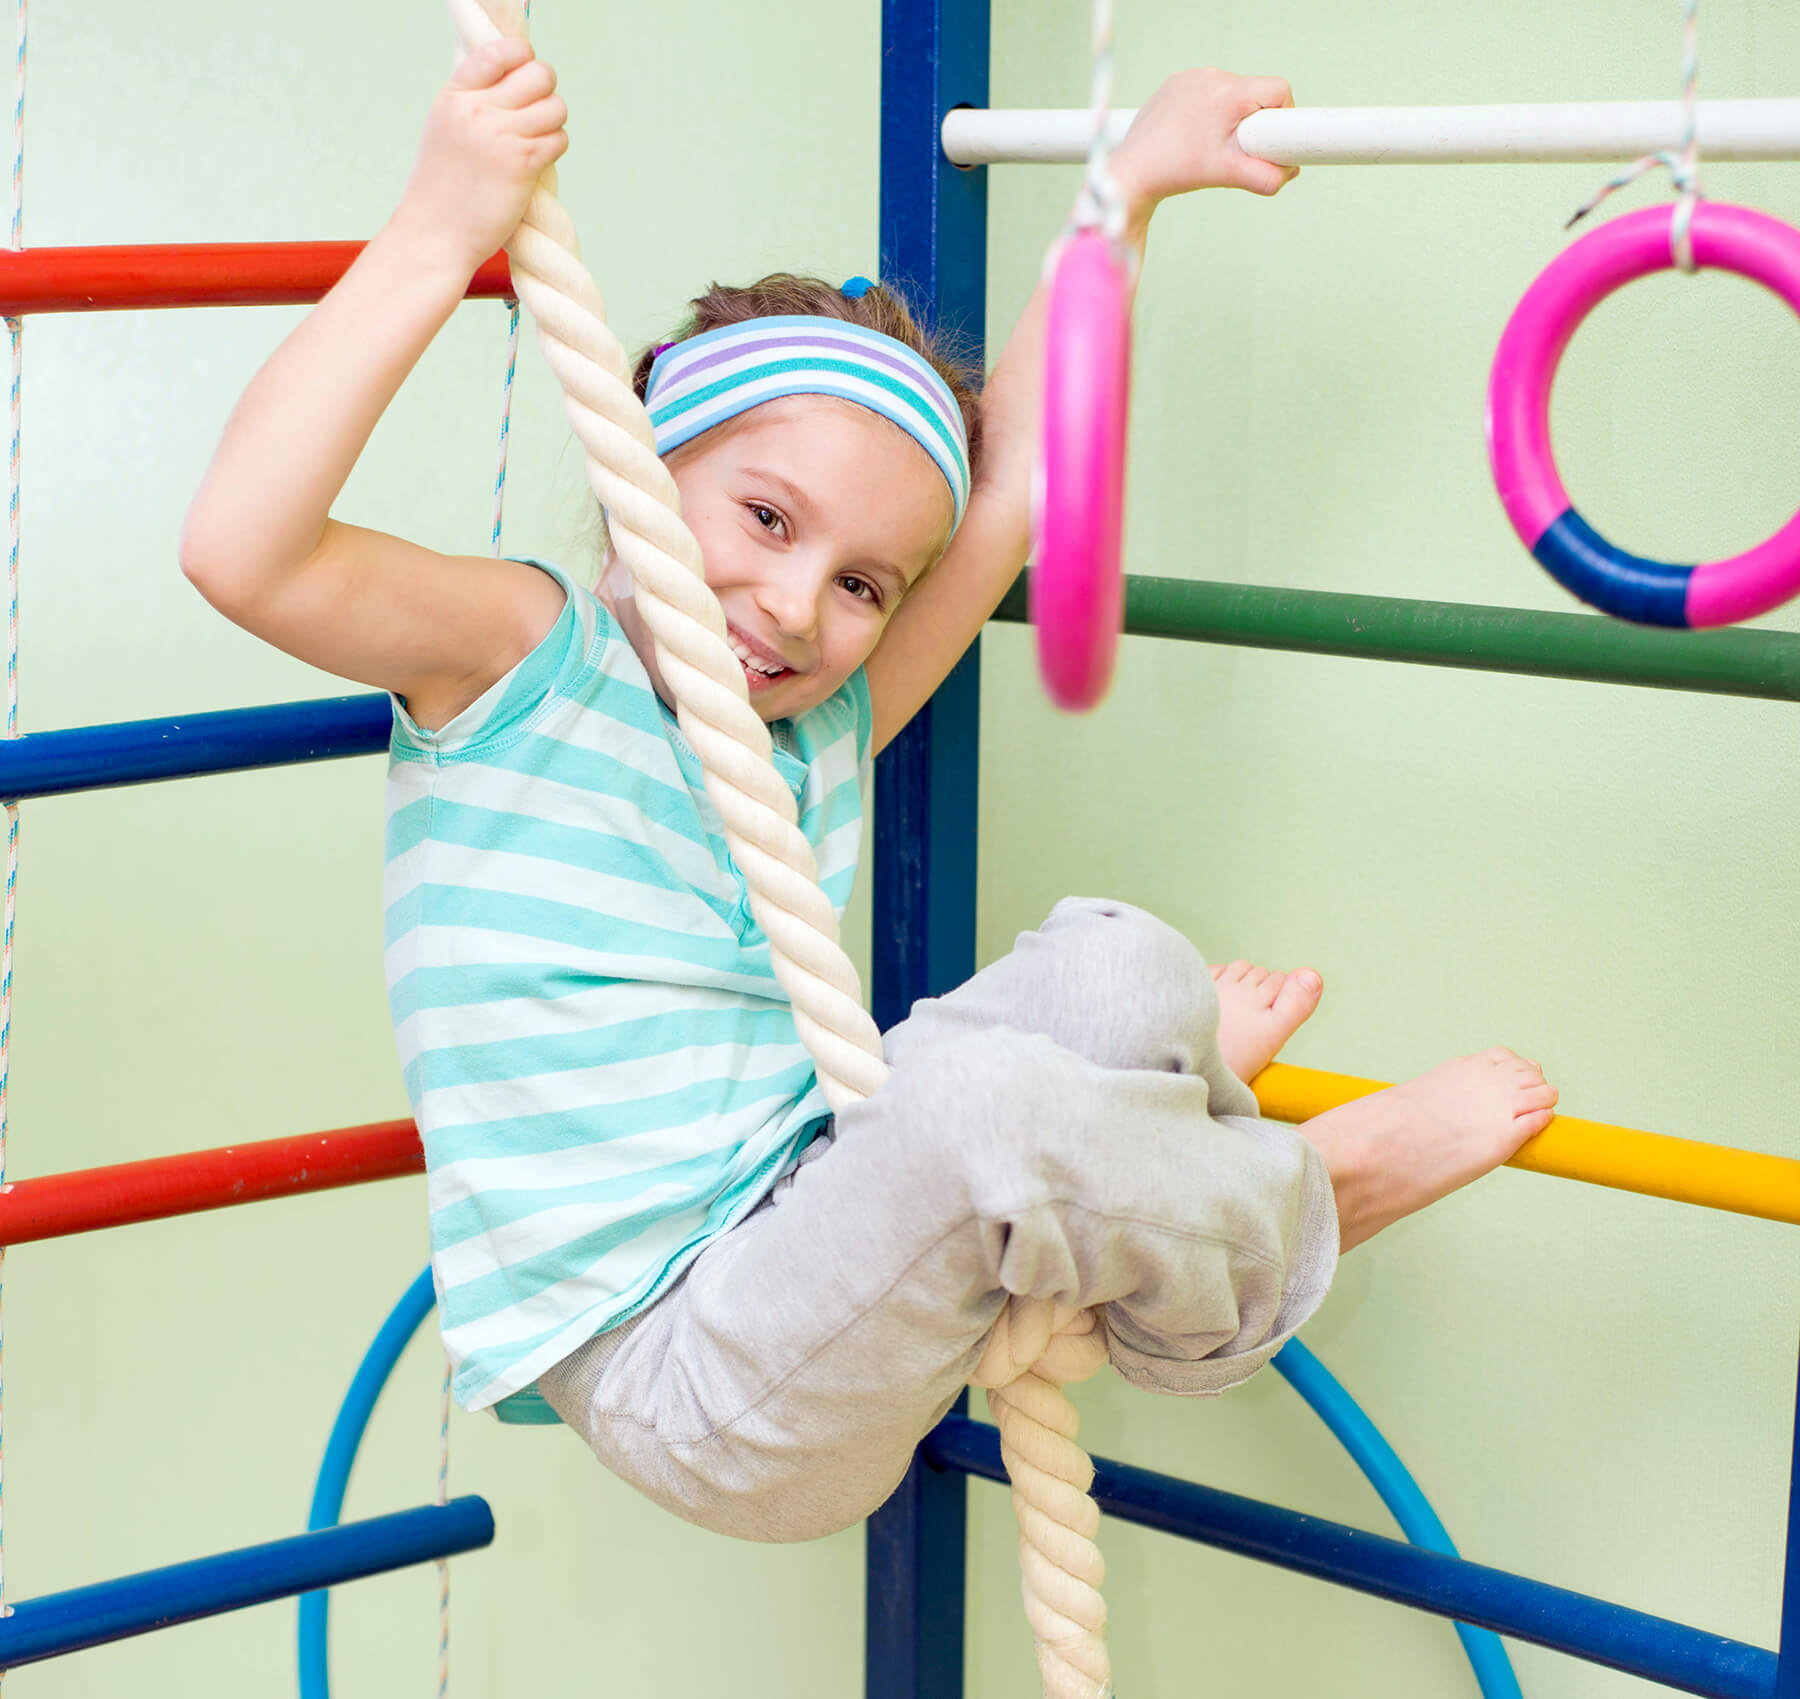 Girl climbing rope in gymnastics class